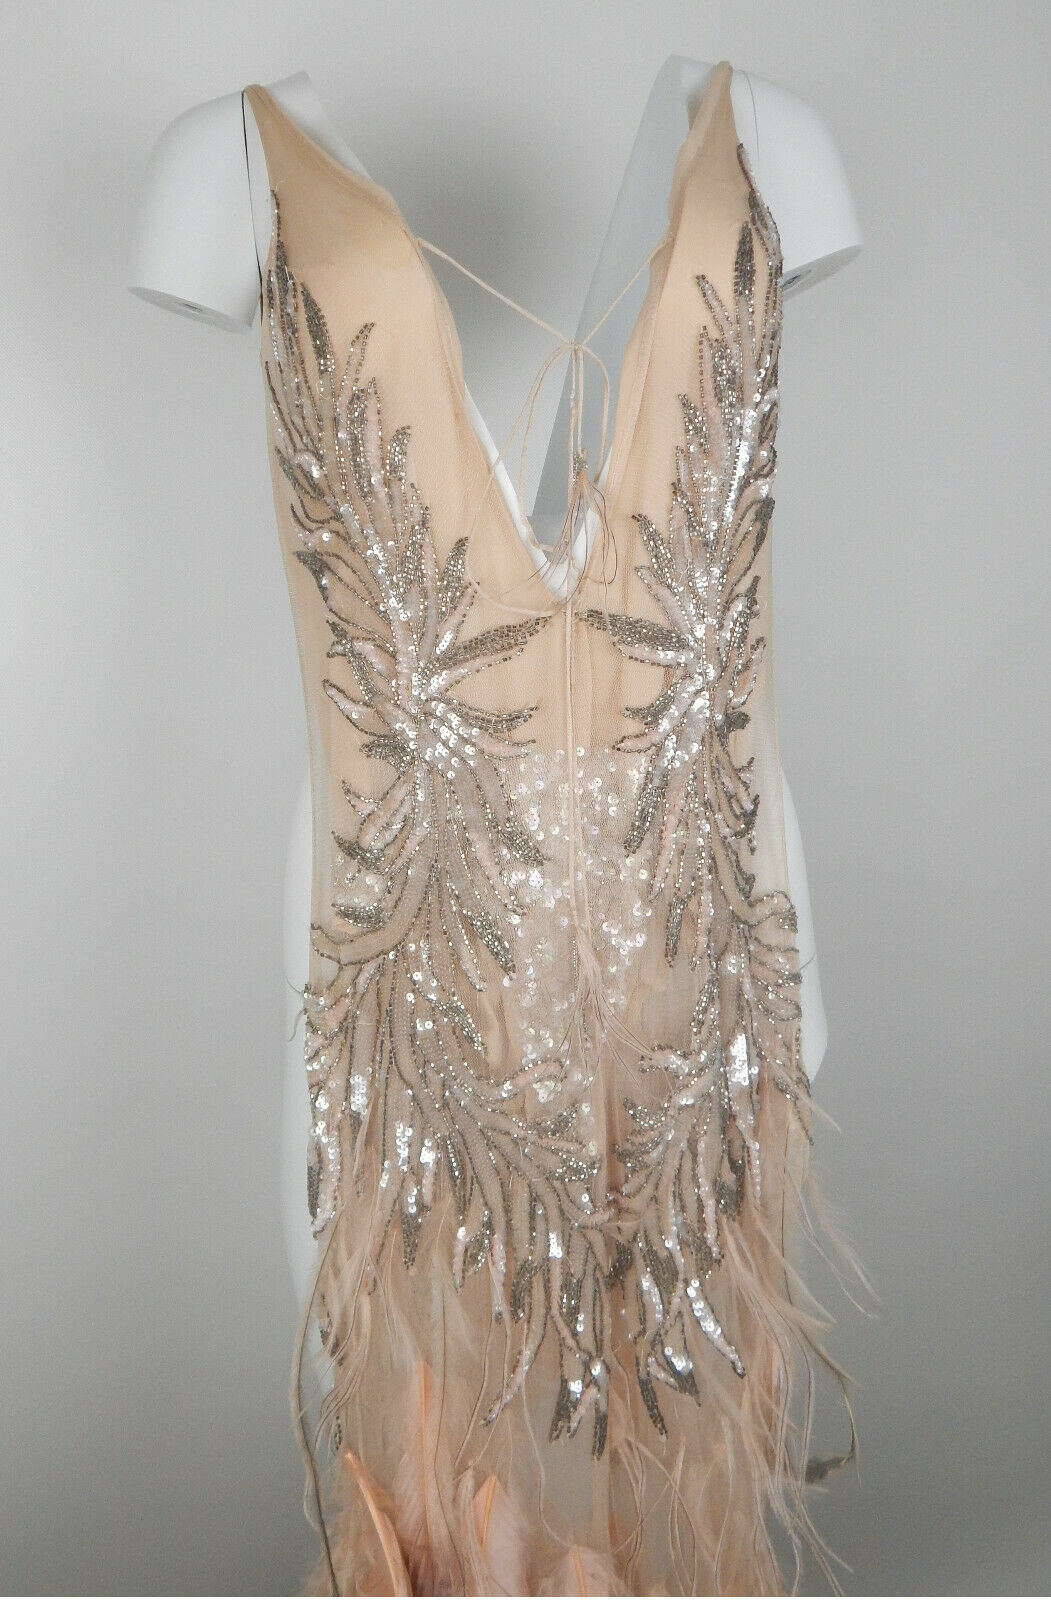 Roberto Cavalli FW2003 Blush Crystal Feather Gown - image 10